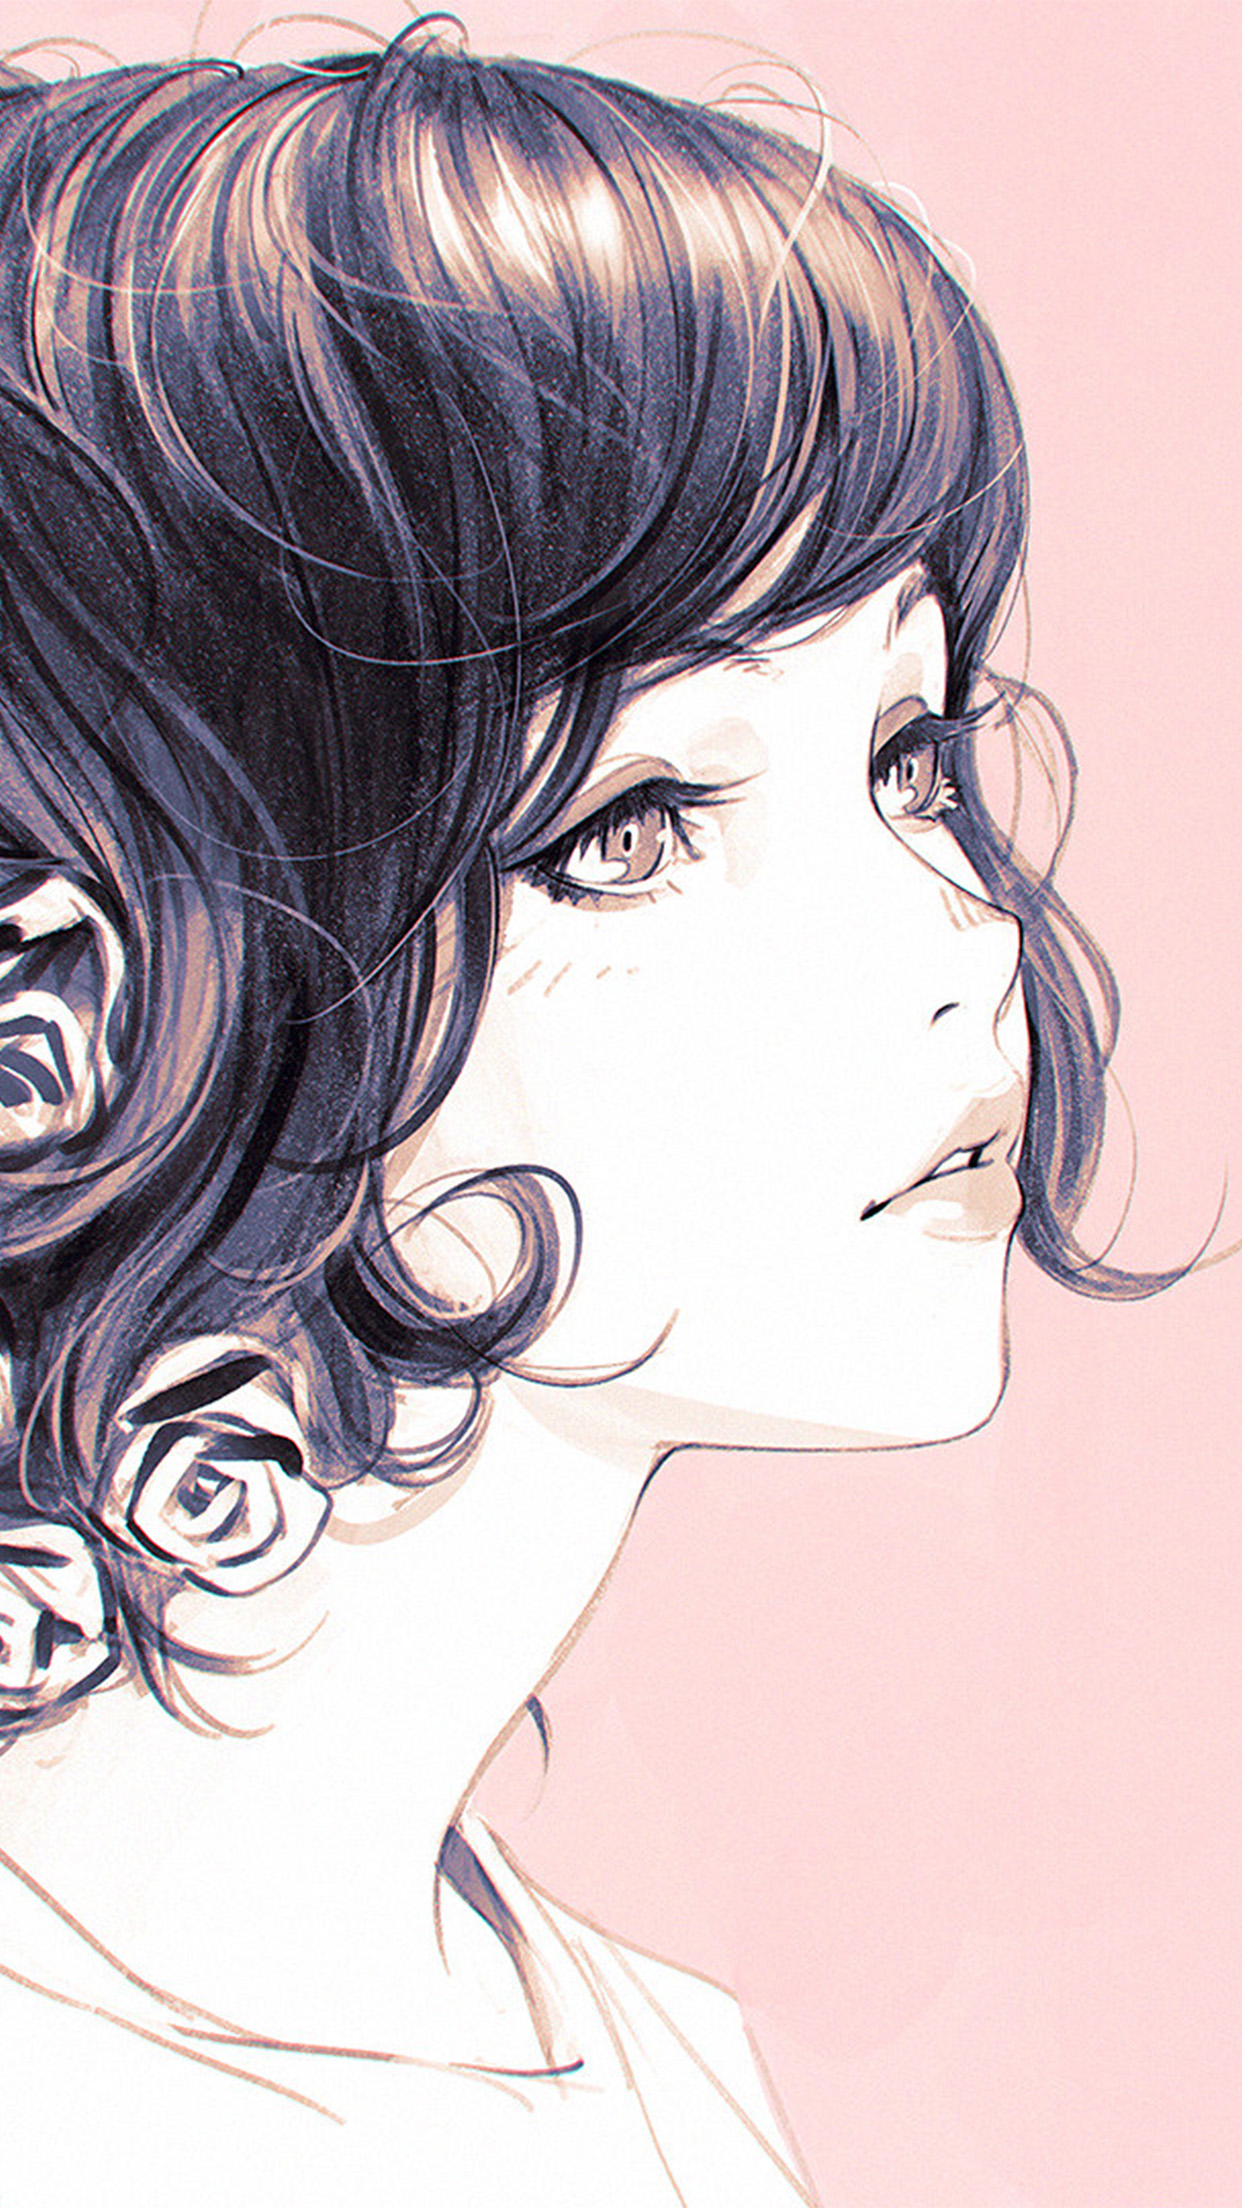 Cute Pink Wallpaper For Iphone 6 Plus Az01 Girl Flower Lady Pink Ilya Kuvshinov Illustration Art